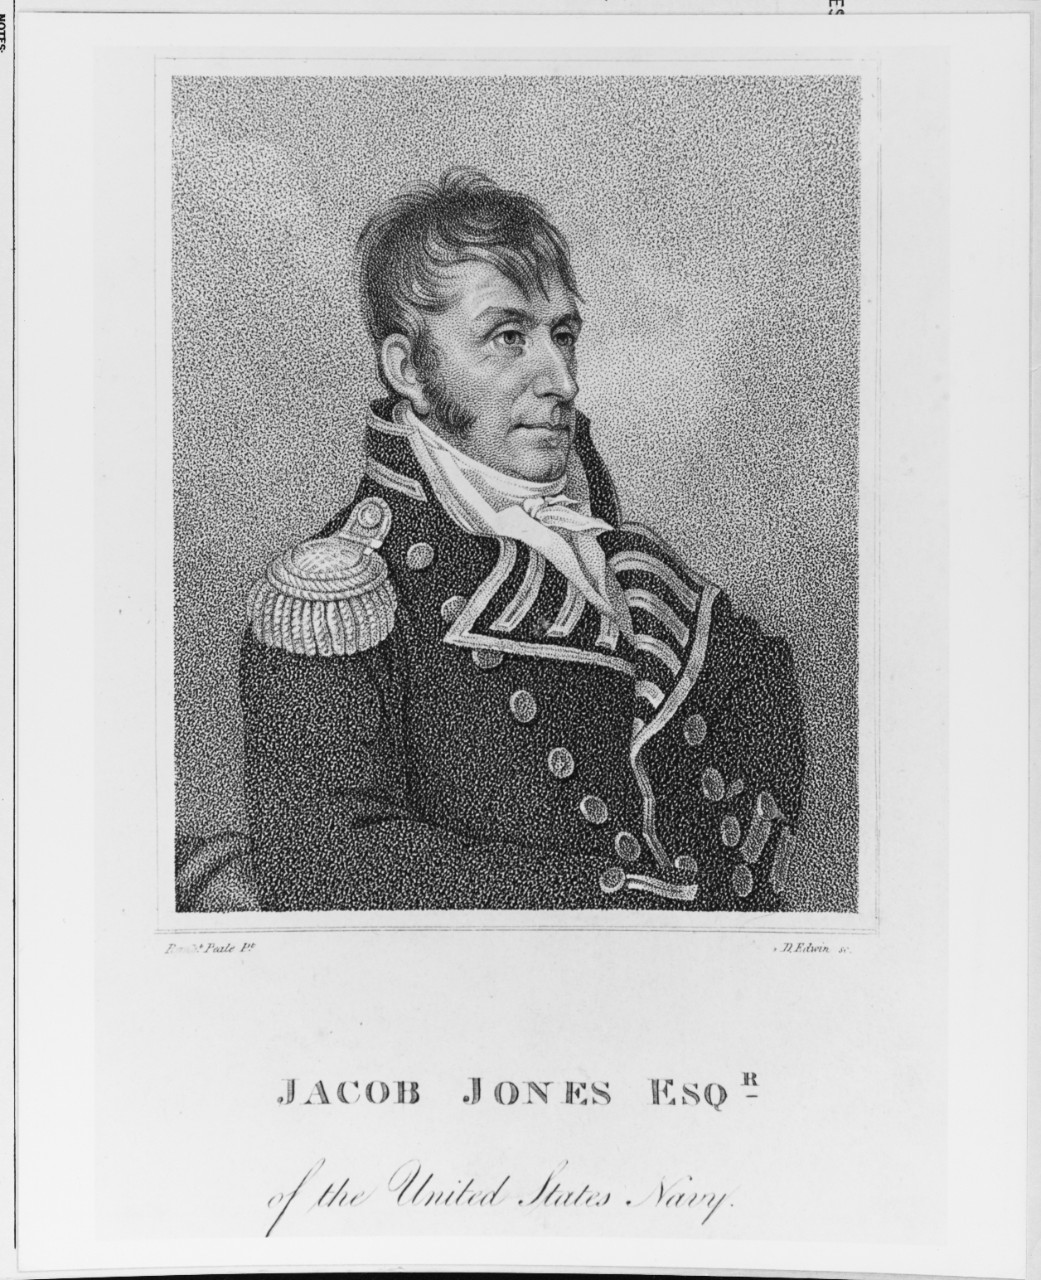 Engraving of Capt. Jacob Jones, USN, by D. Edwin, after the portrait by Rembrandt Peale. (Naval History and Heritage Command Photograph NH 63713)